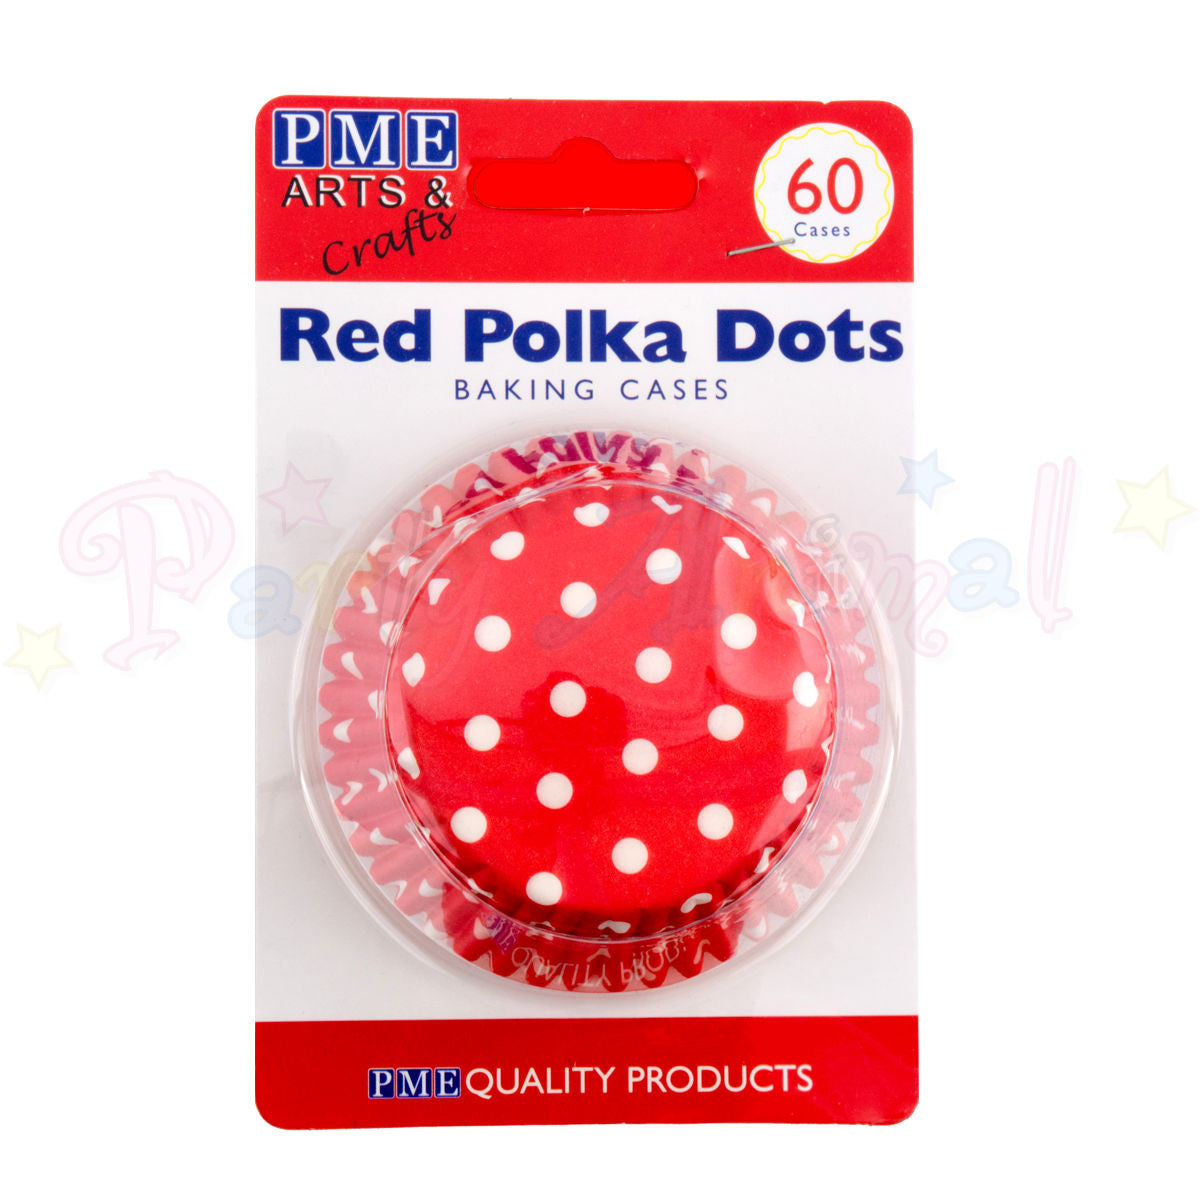 PME Bun / Cupcake Cases RED POLKA DOTS - Pack of 60